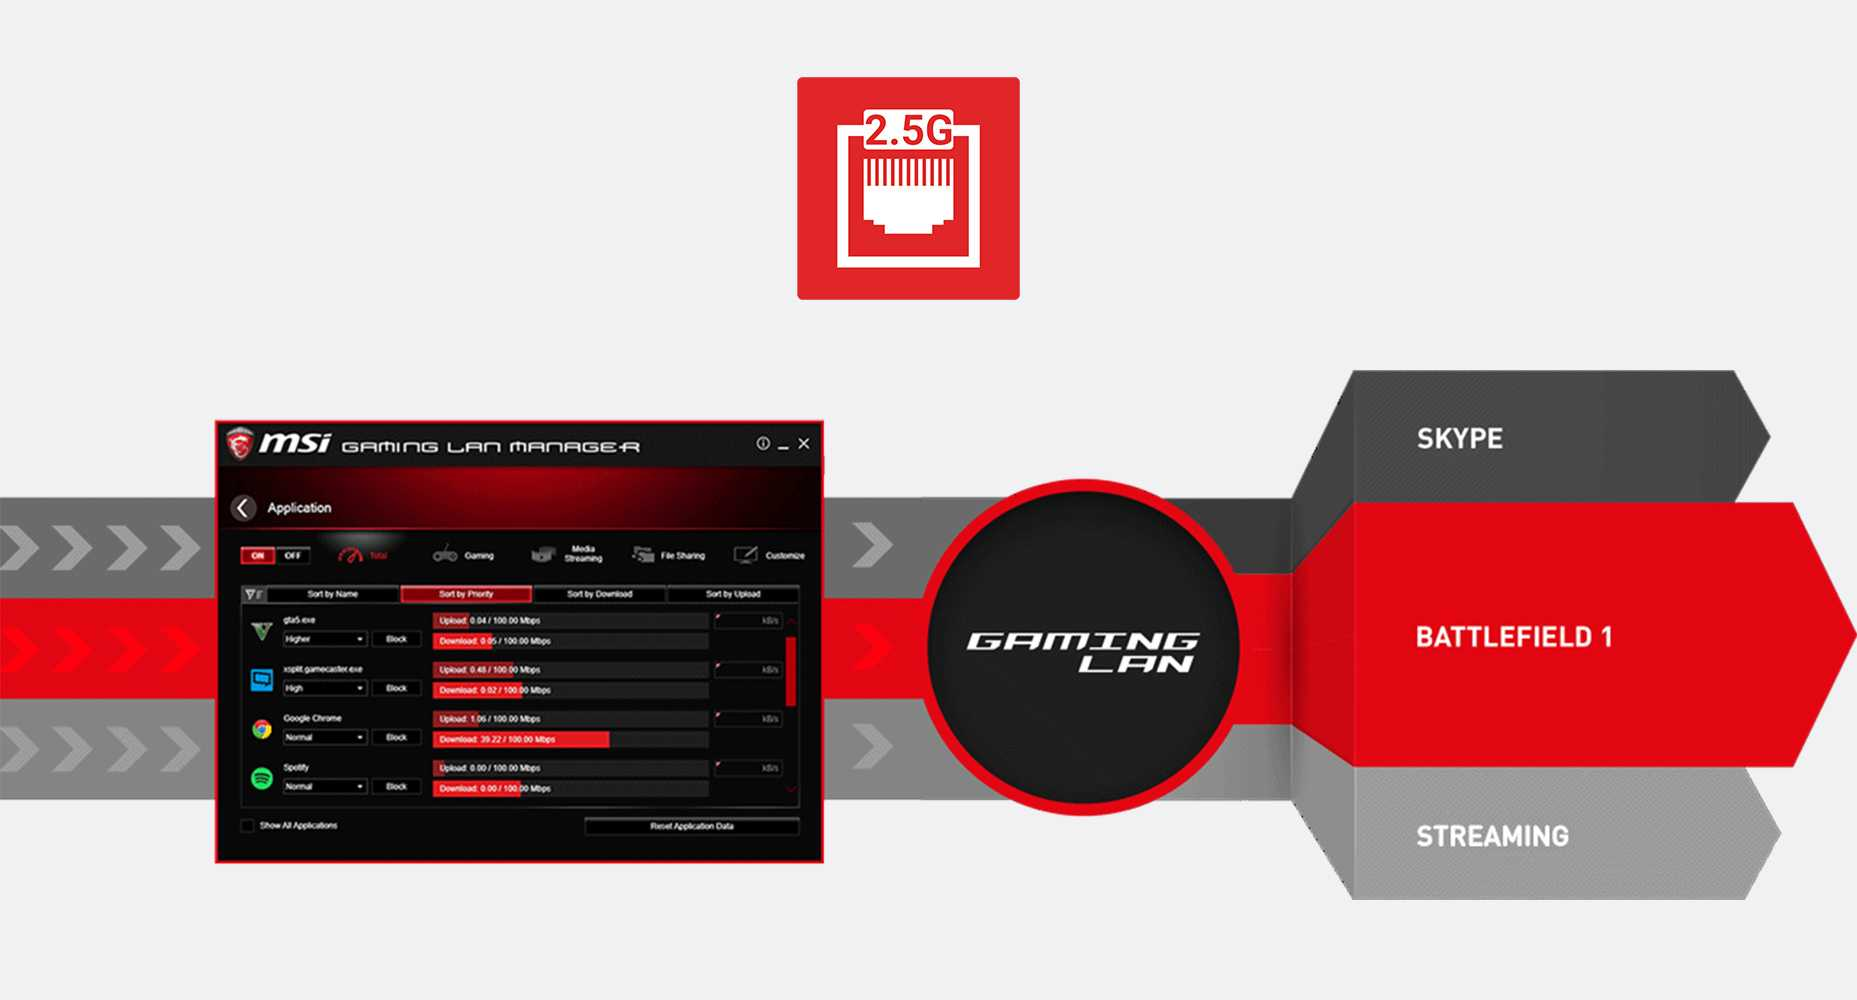 MSI THE LOWEST LATENCY 2.5G GAMING LAN